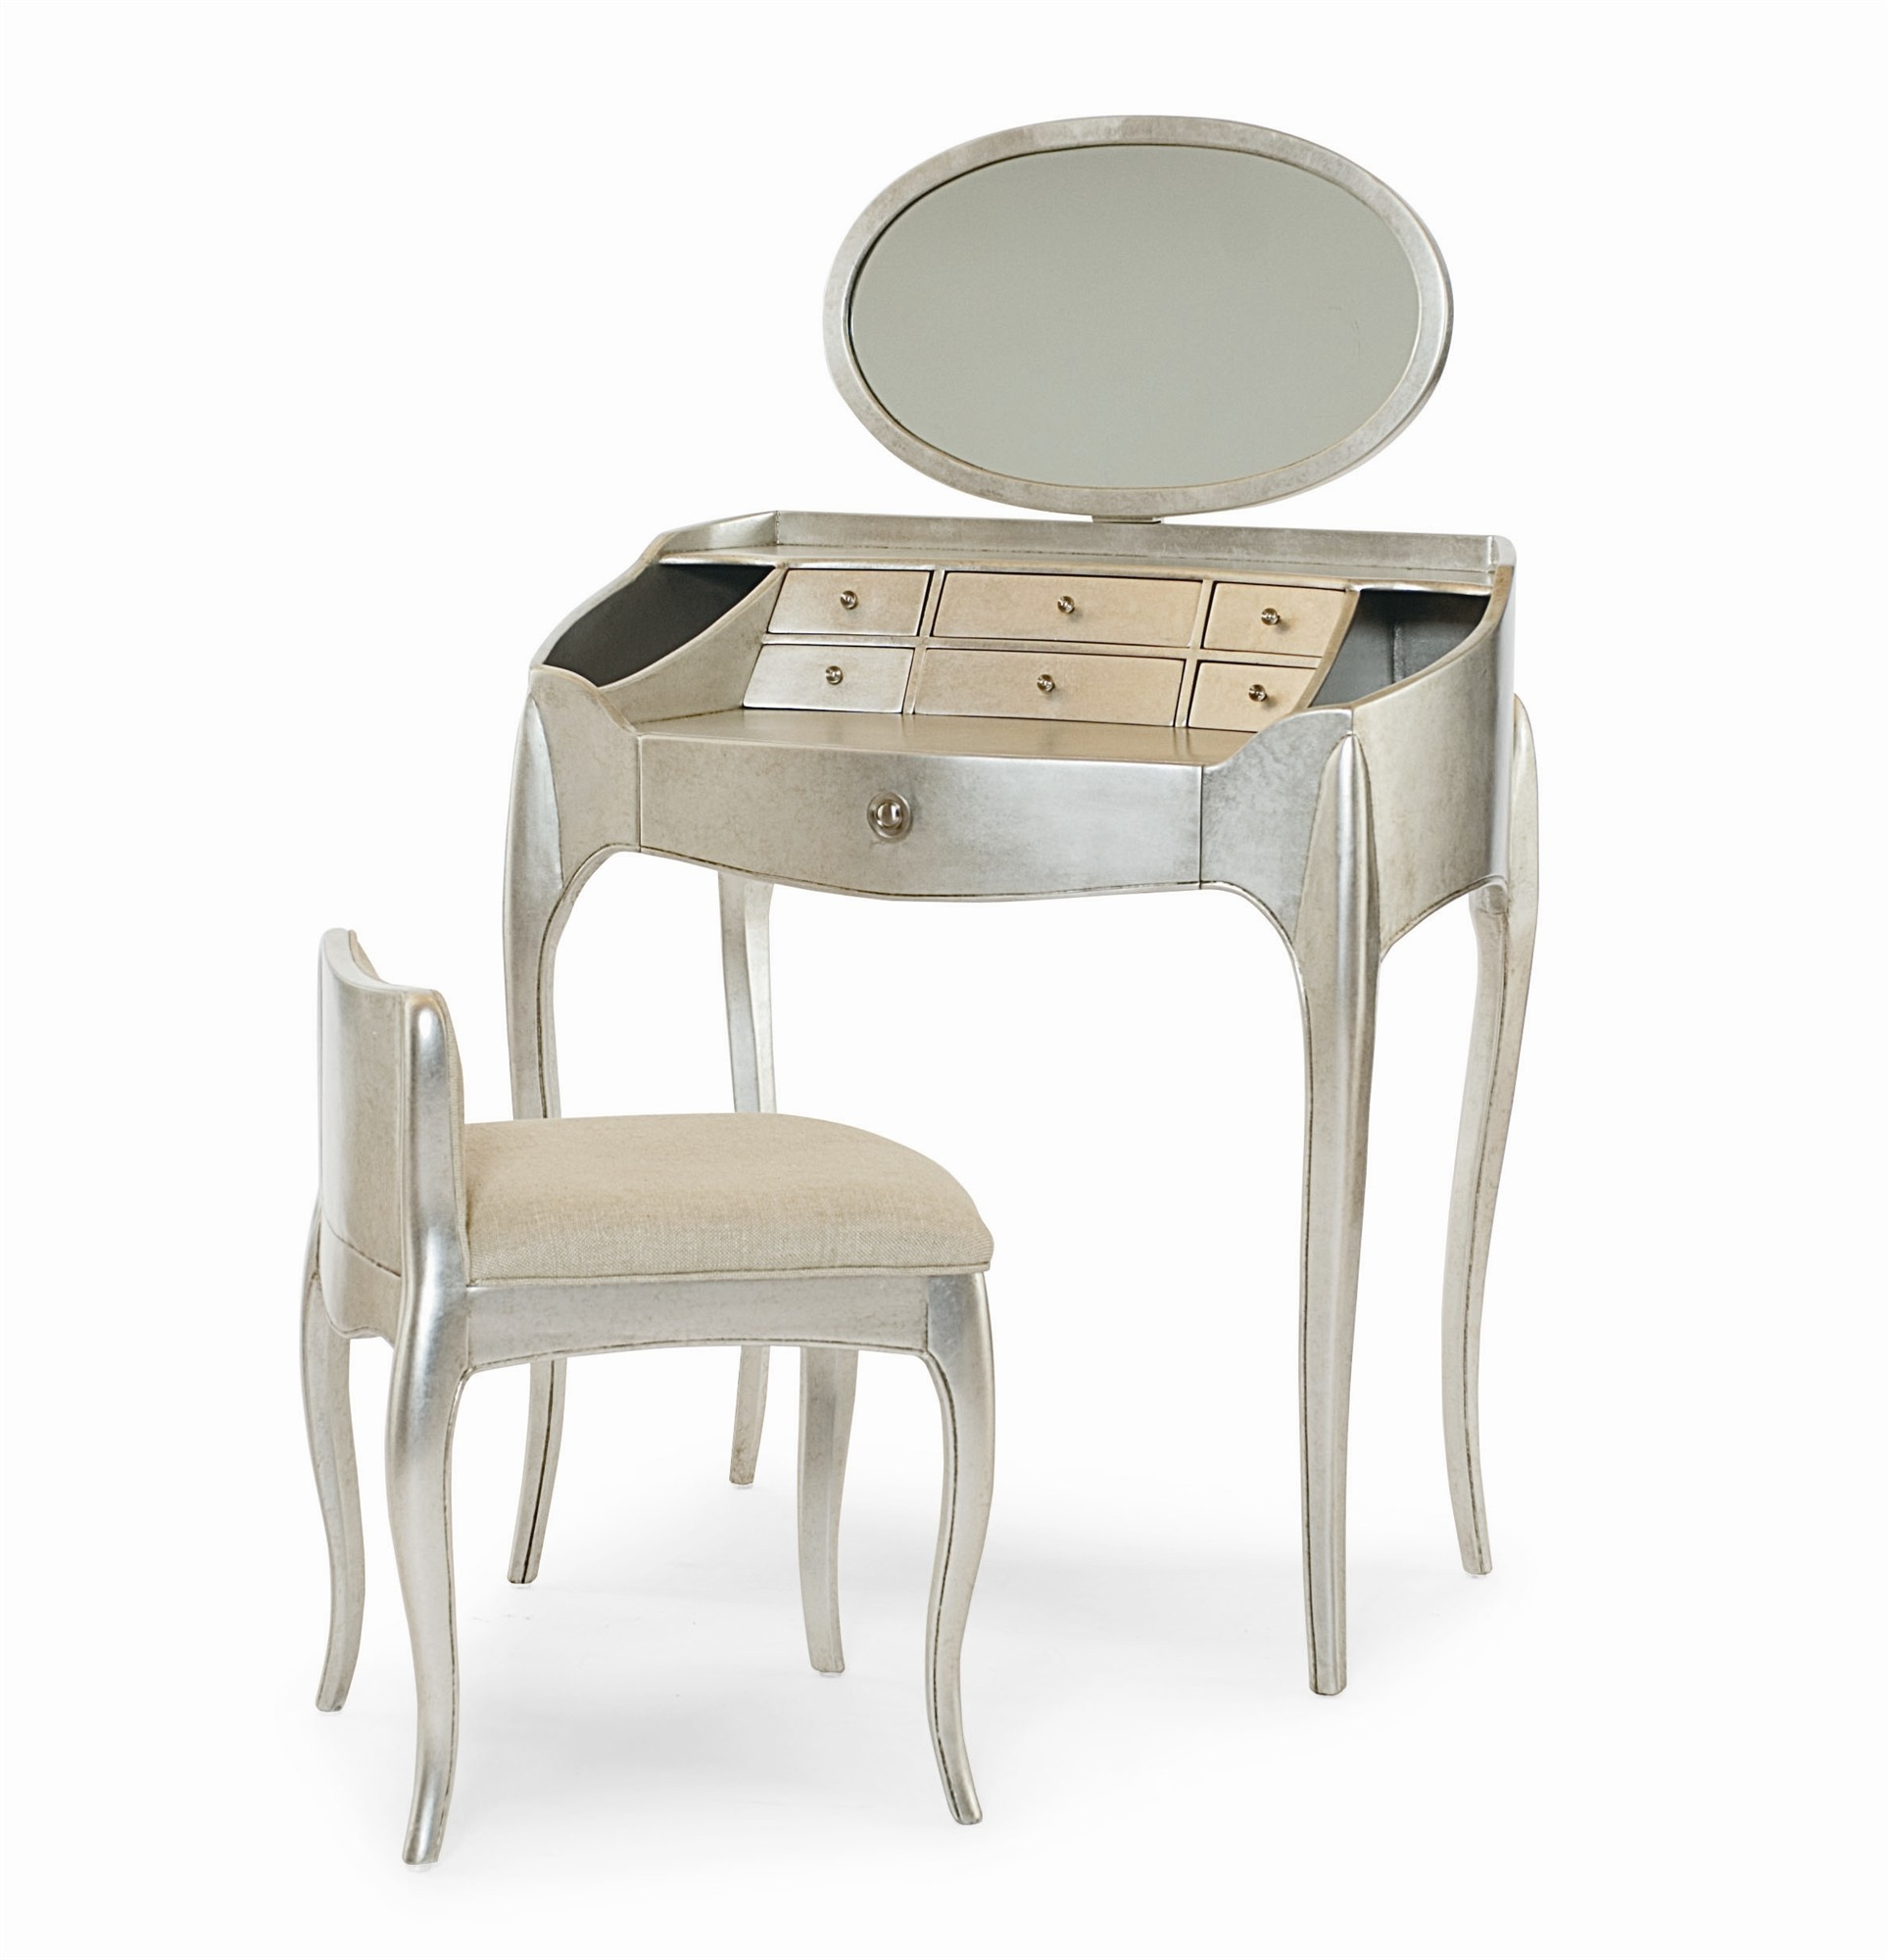 Pierre Vanity With Mirror & Vanity Chair